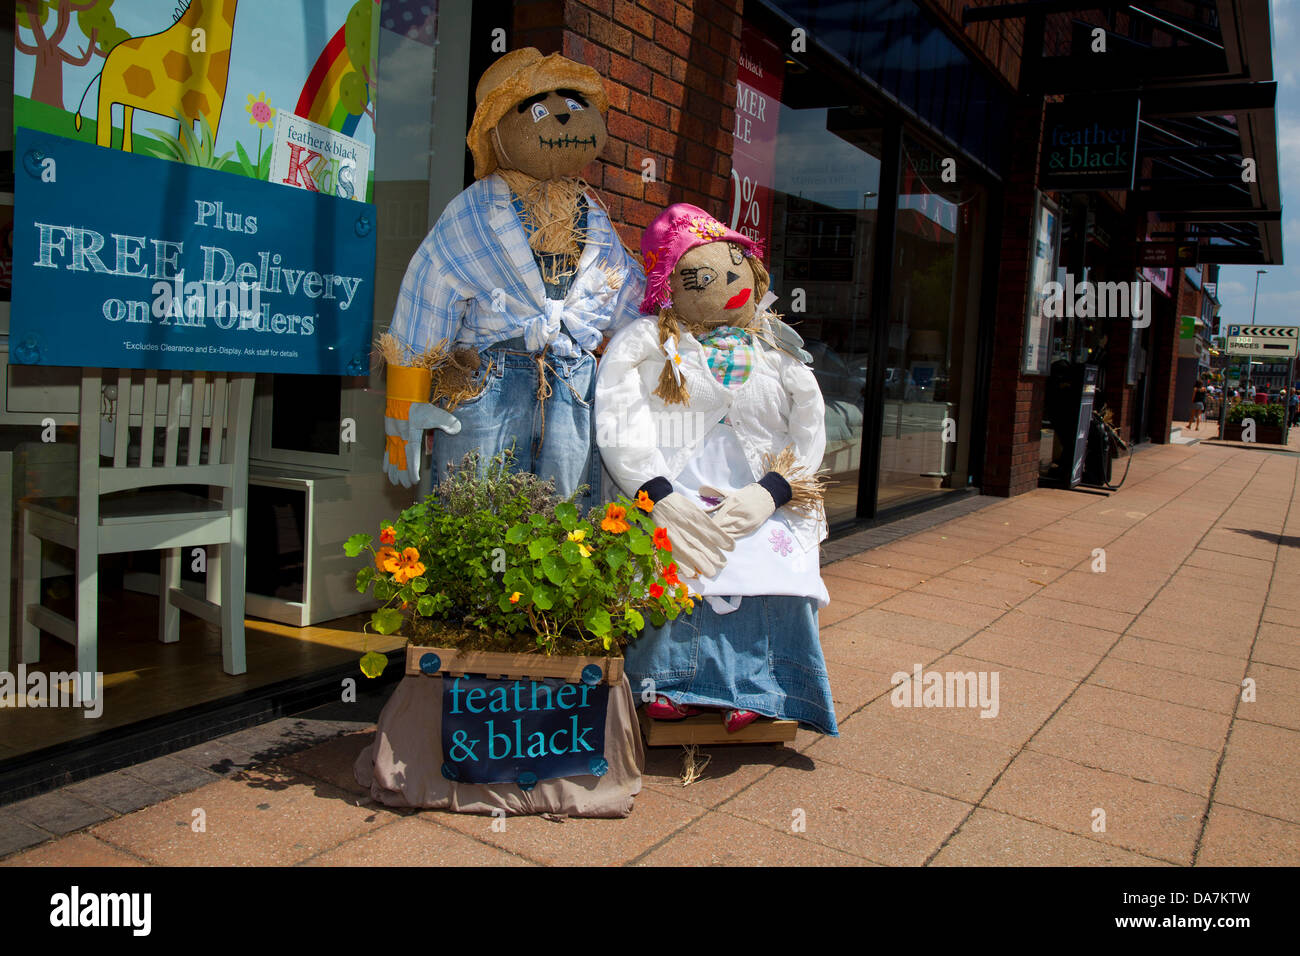 Furniture retailer Feather & Black store. Straw Man & woman advertising Free Delivery on all orders with - Stock Image